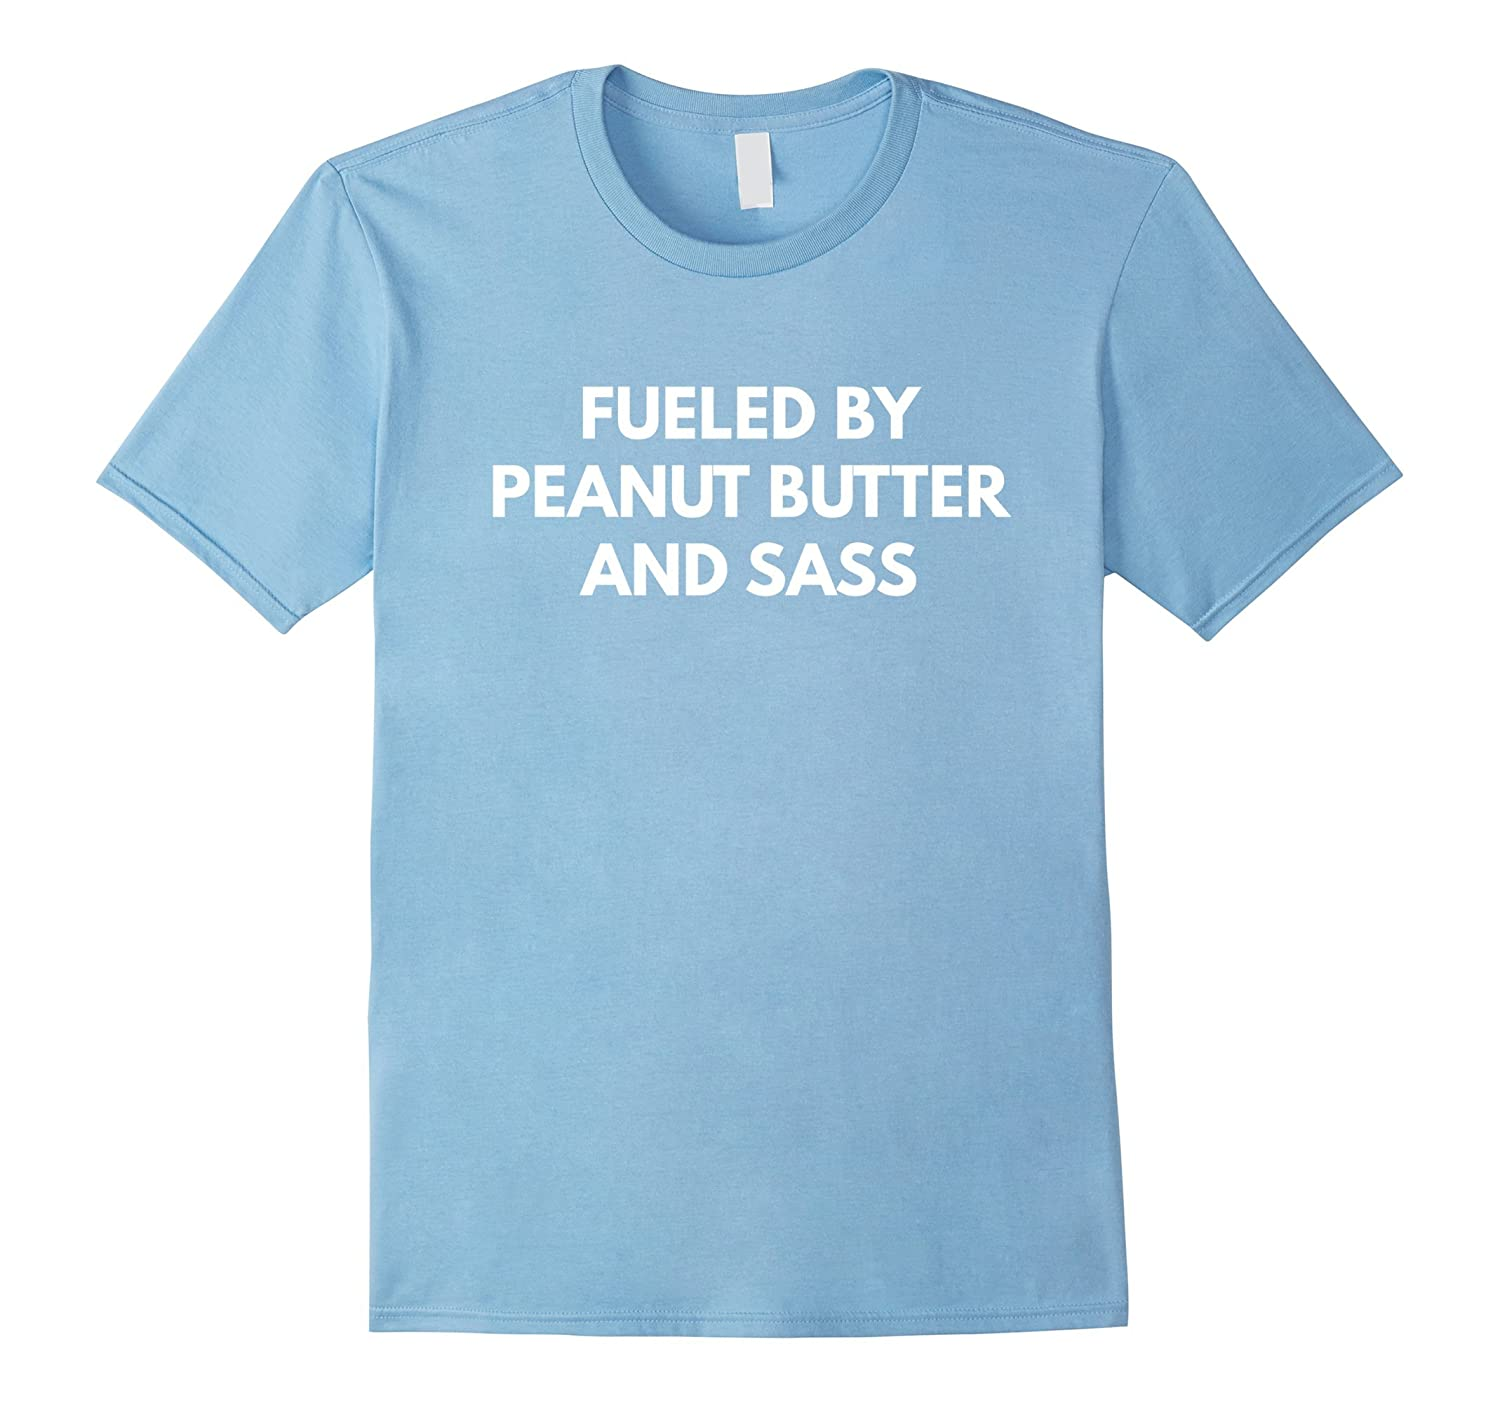 3718e4d02 Fueled by Peanut Butter and Sass t-shirt - Funny Humor Tees-ANZ ...